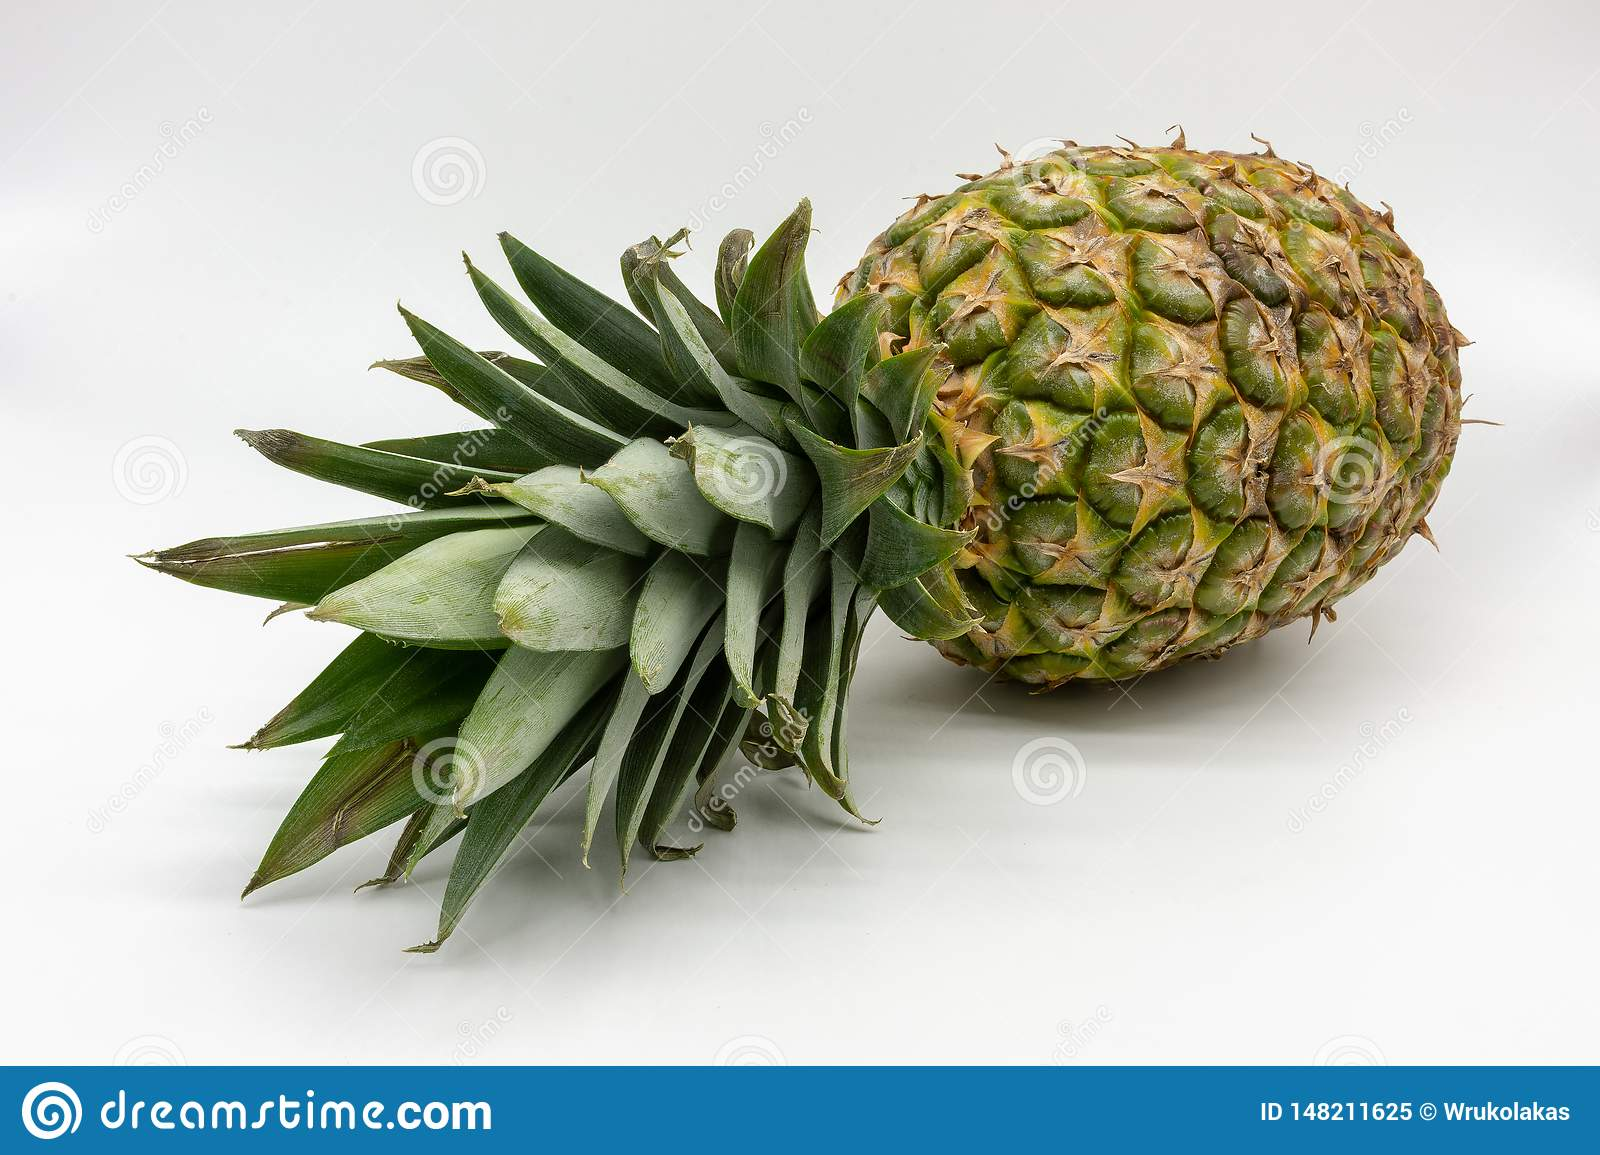 A ripe juicy and fresh pineapple